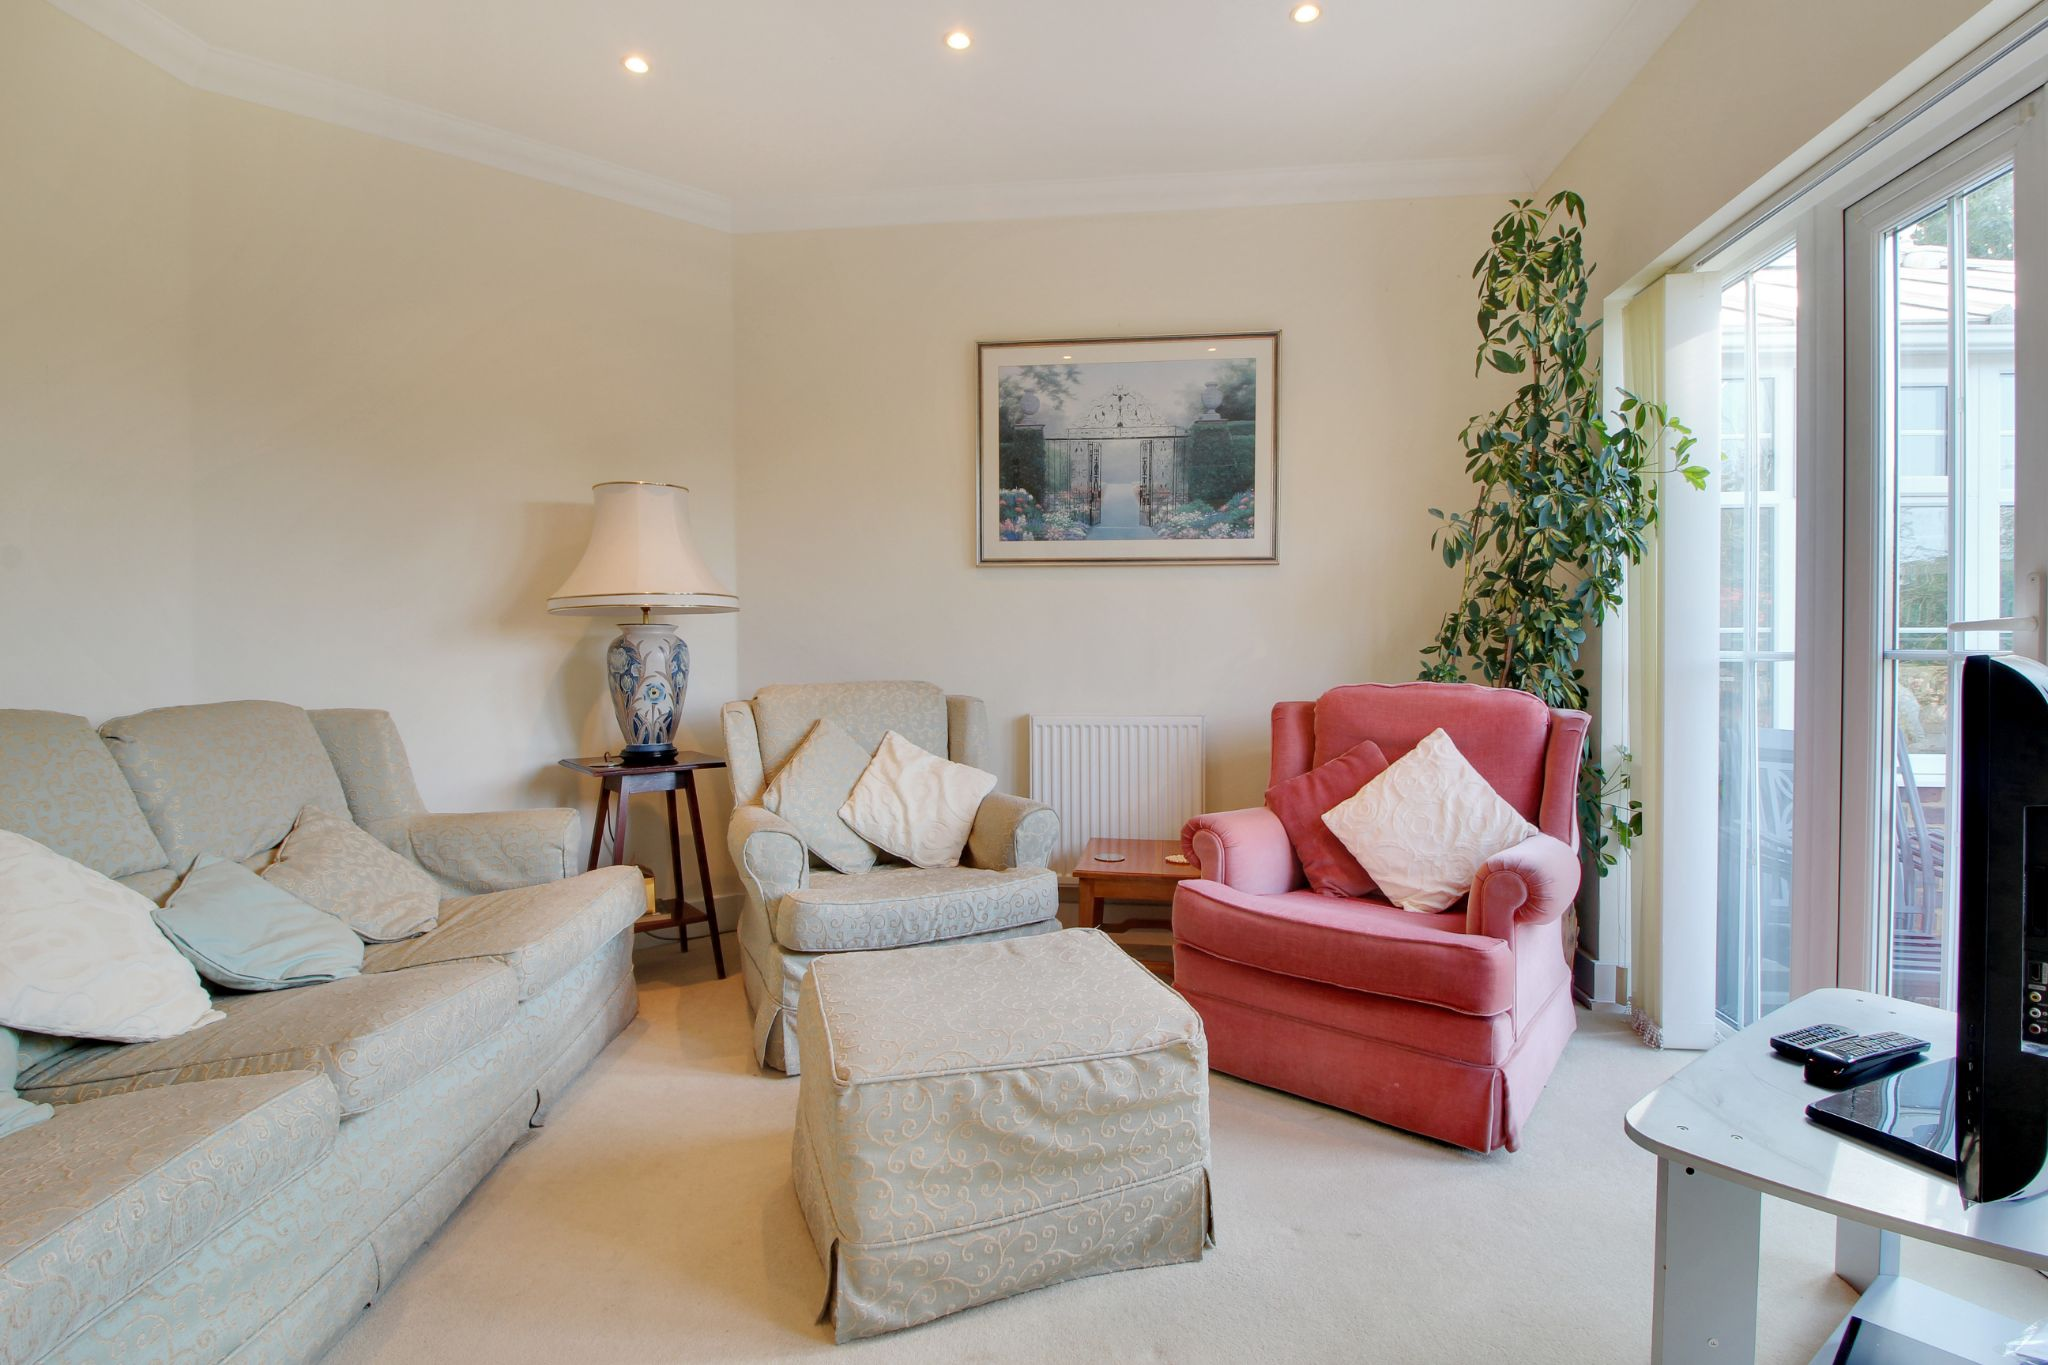 5 bedroom detached house For Sale in Sevenoaks - Photograph 5